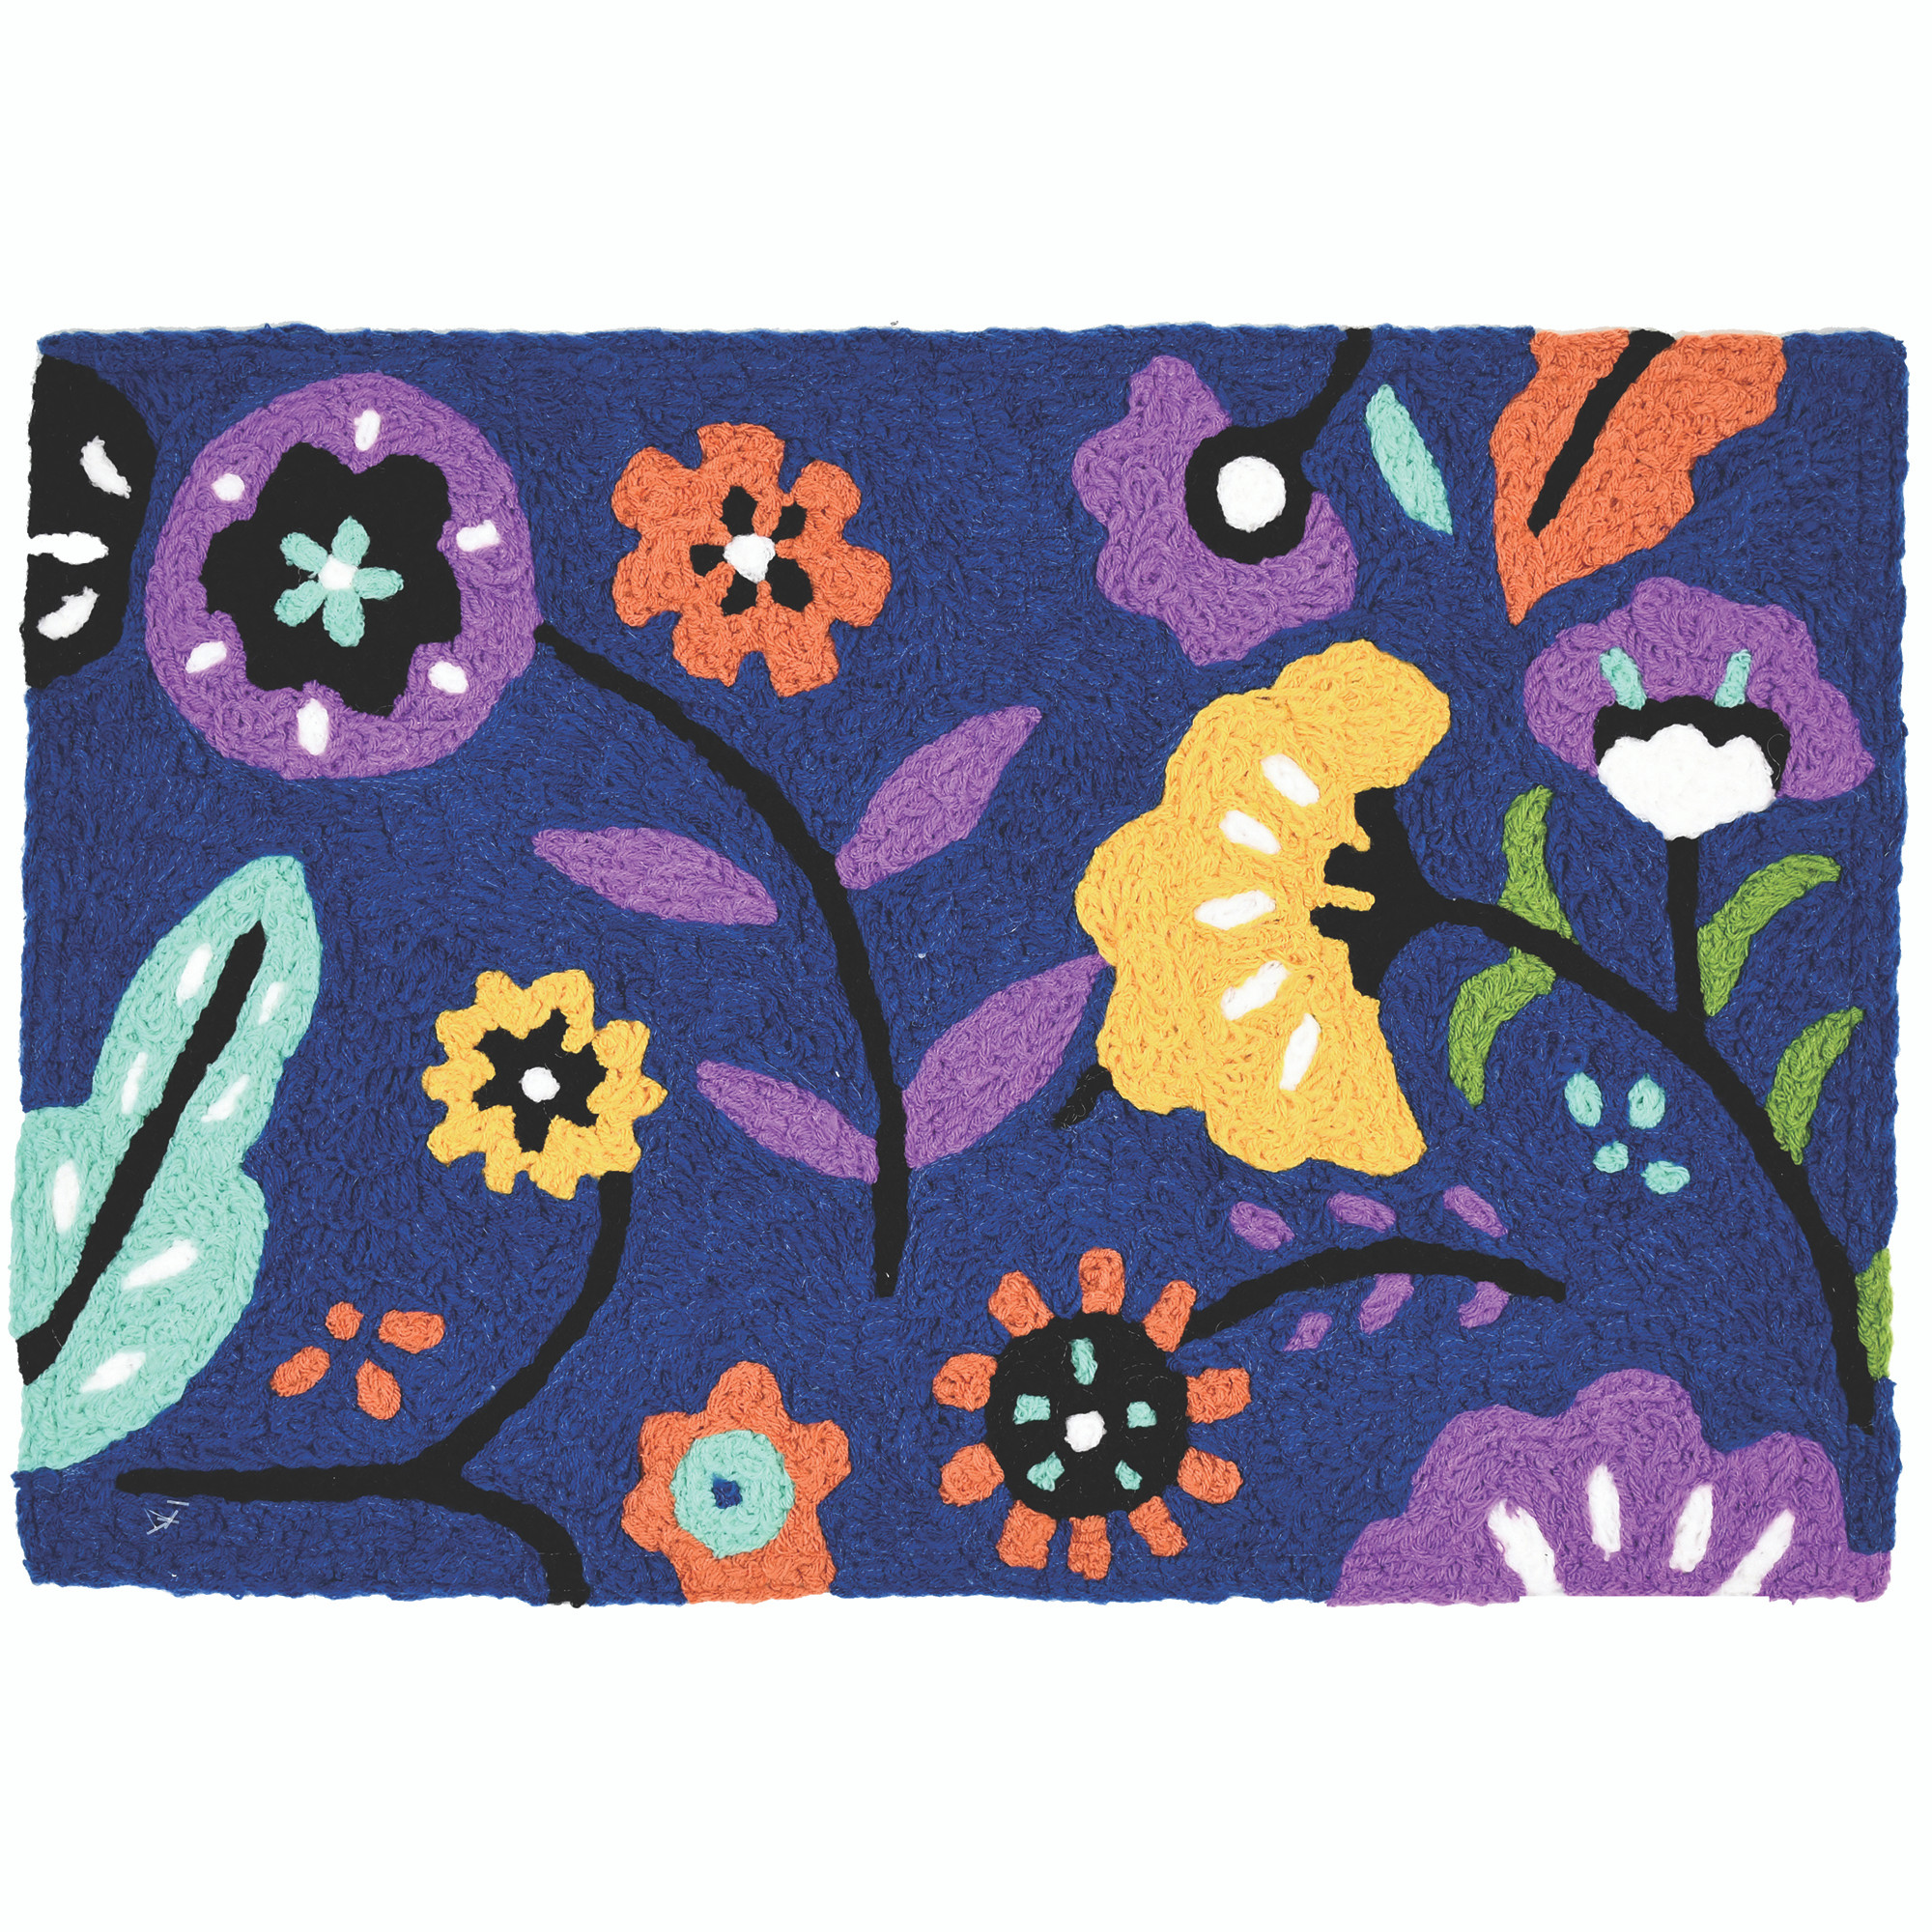 This Jellybean® accent rug features bright blooms bending beneath the passing wind. A deep blue background makes the vibrant colors of this indoor/outdoor rug pop. This polyester accent rug is machine washable for added durability.